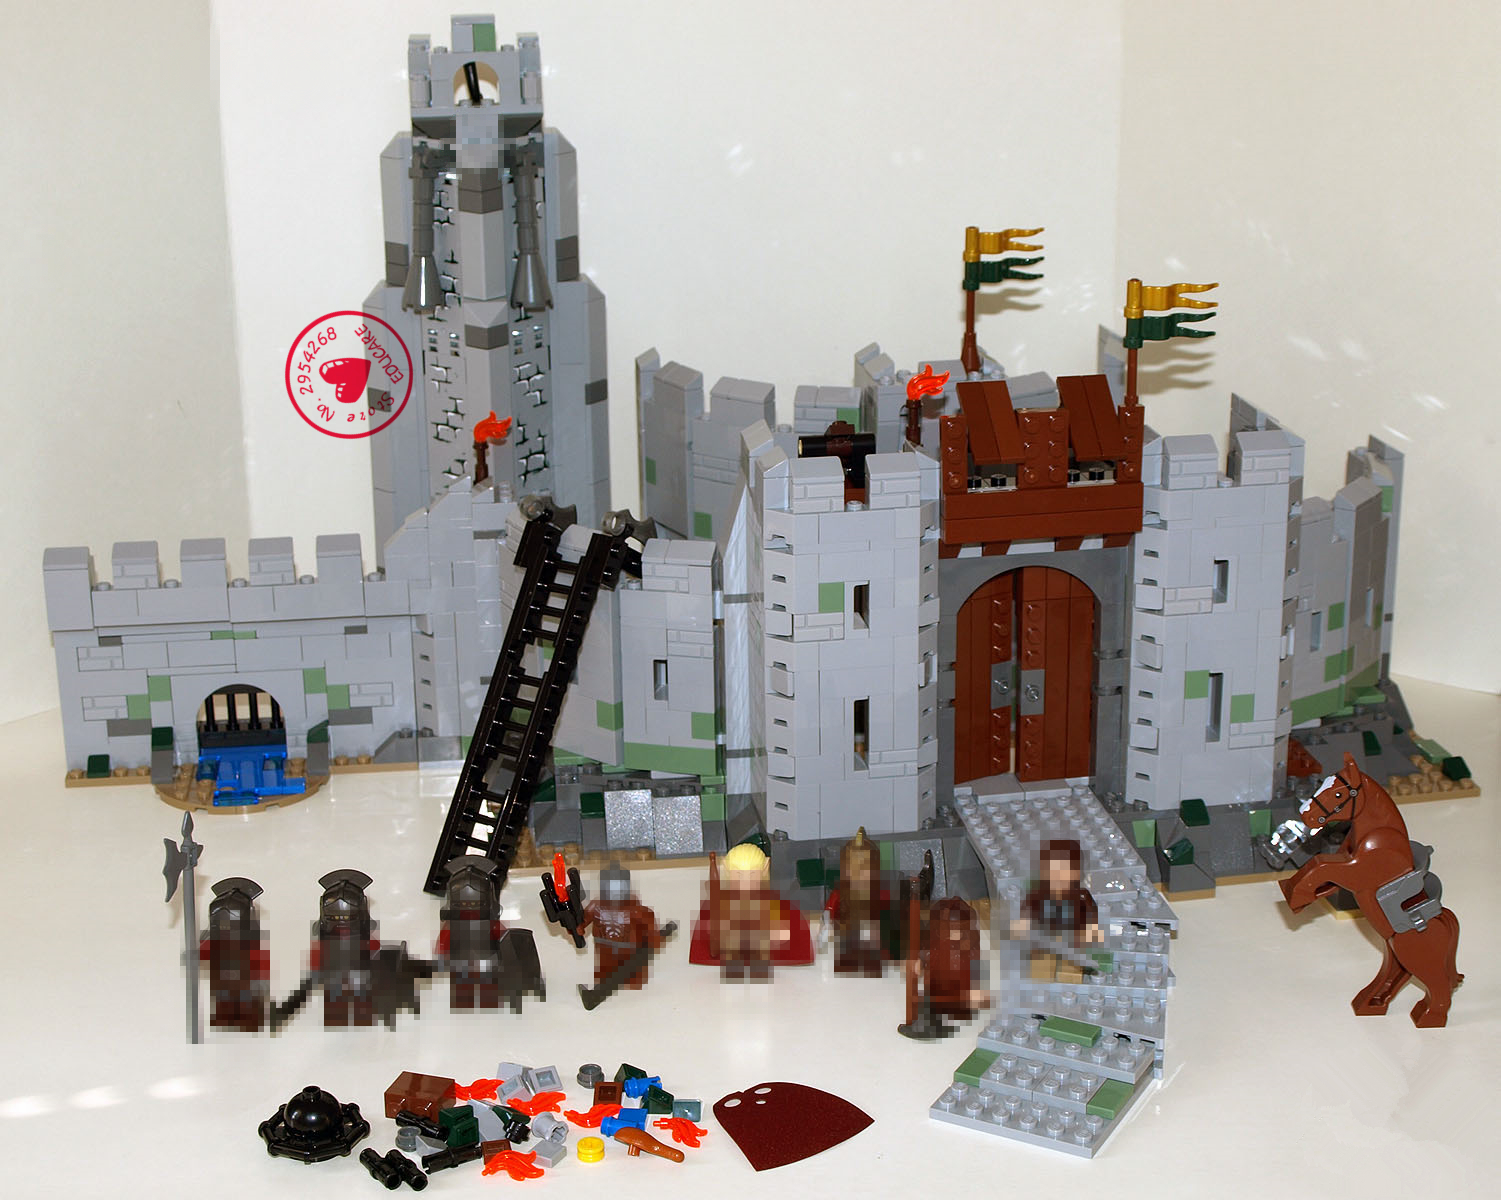 Lepin 16013 The Lord of the Rings Series Battle Of Helm' Deep Model Building Blocks Bricks compatiable with lego kid gift set hot sale the hobbit lord of the rings mordor orc uruk hai aragorn rohan mirkwood elf building blocks bricks children gift toys